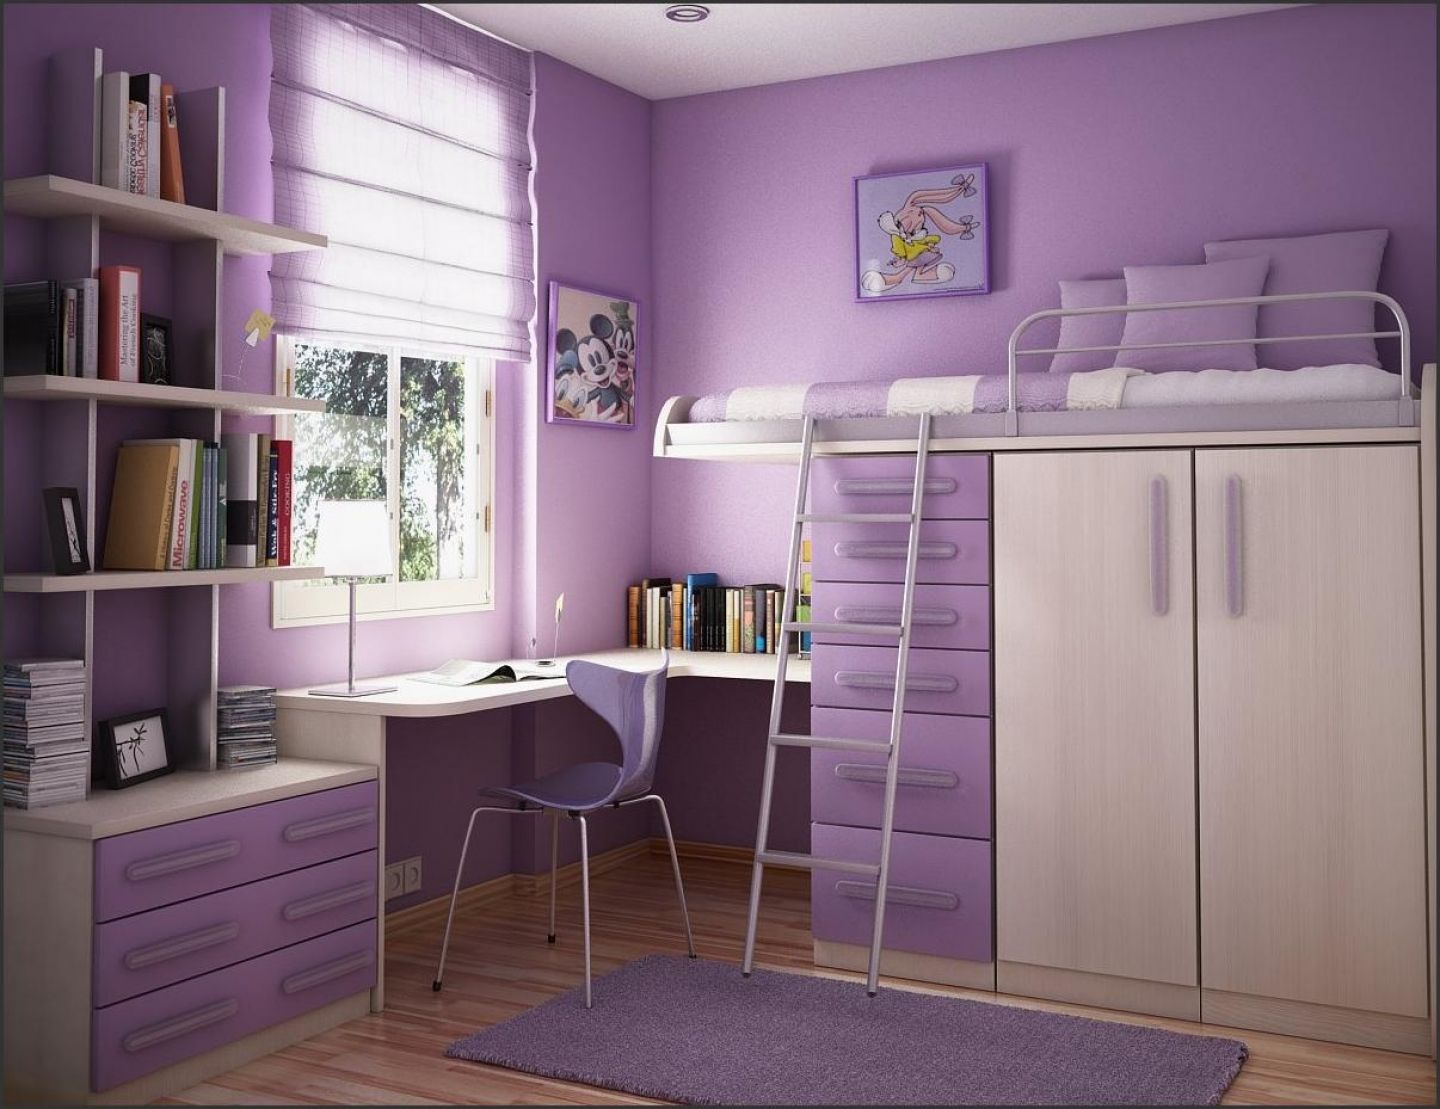 teen girl bedroom decorating ideas 06 13 1403 room design ideas for girl - Creative Girls Rooms